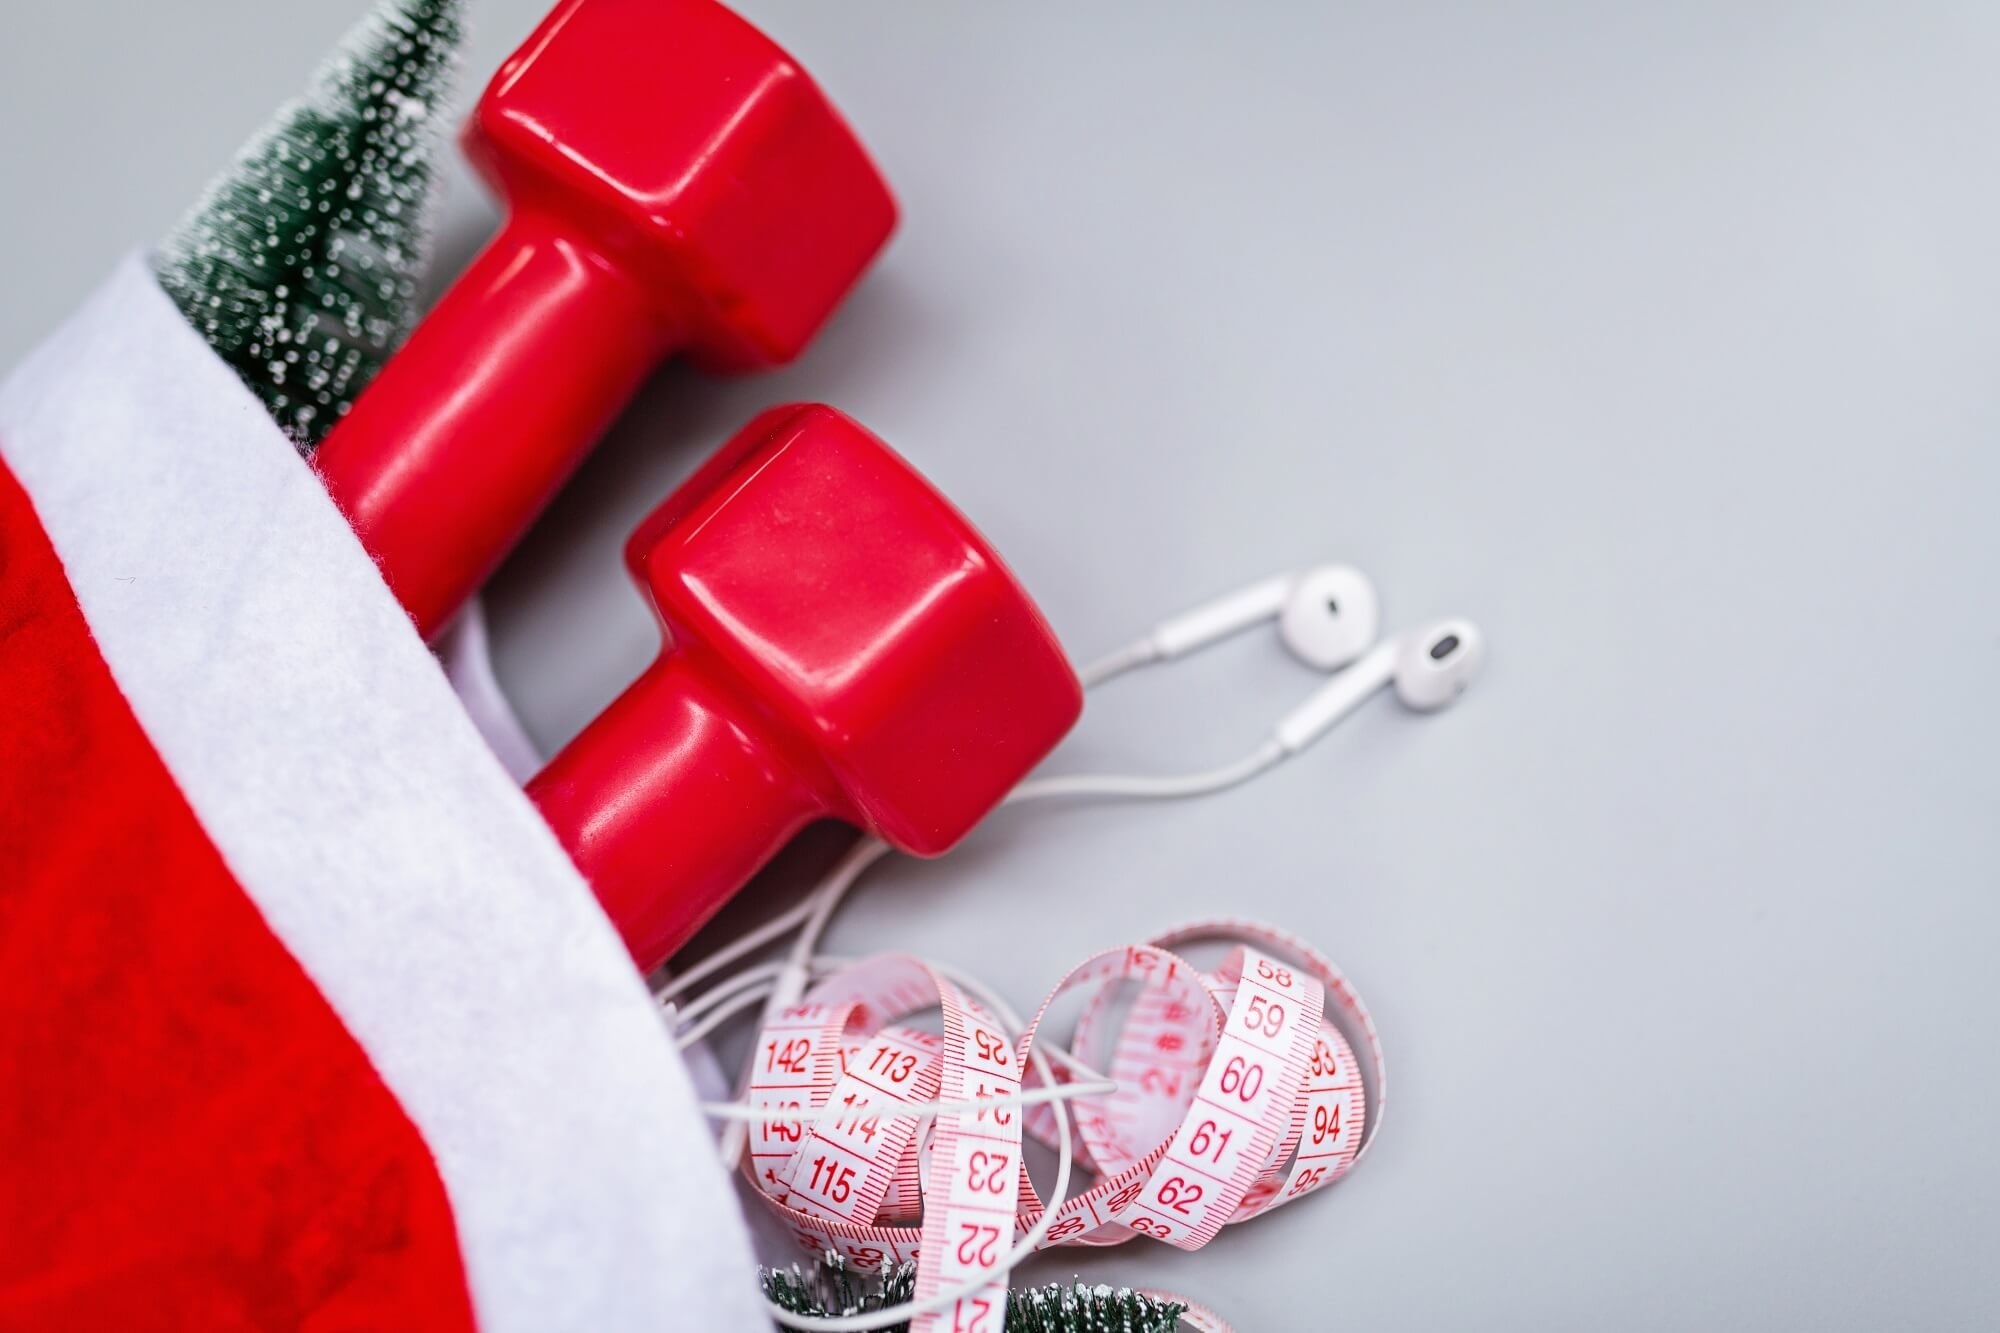 staying healthy during the holidays with exercise presents